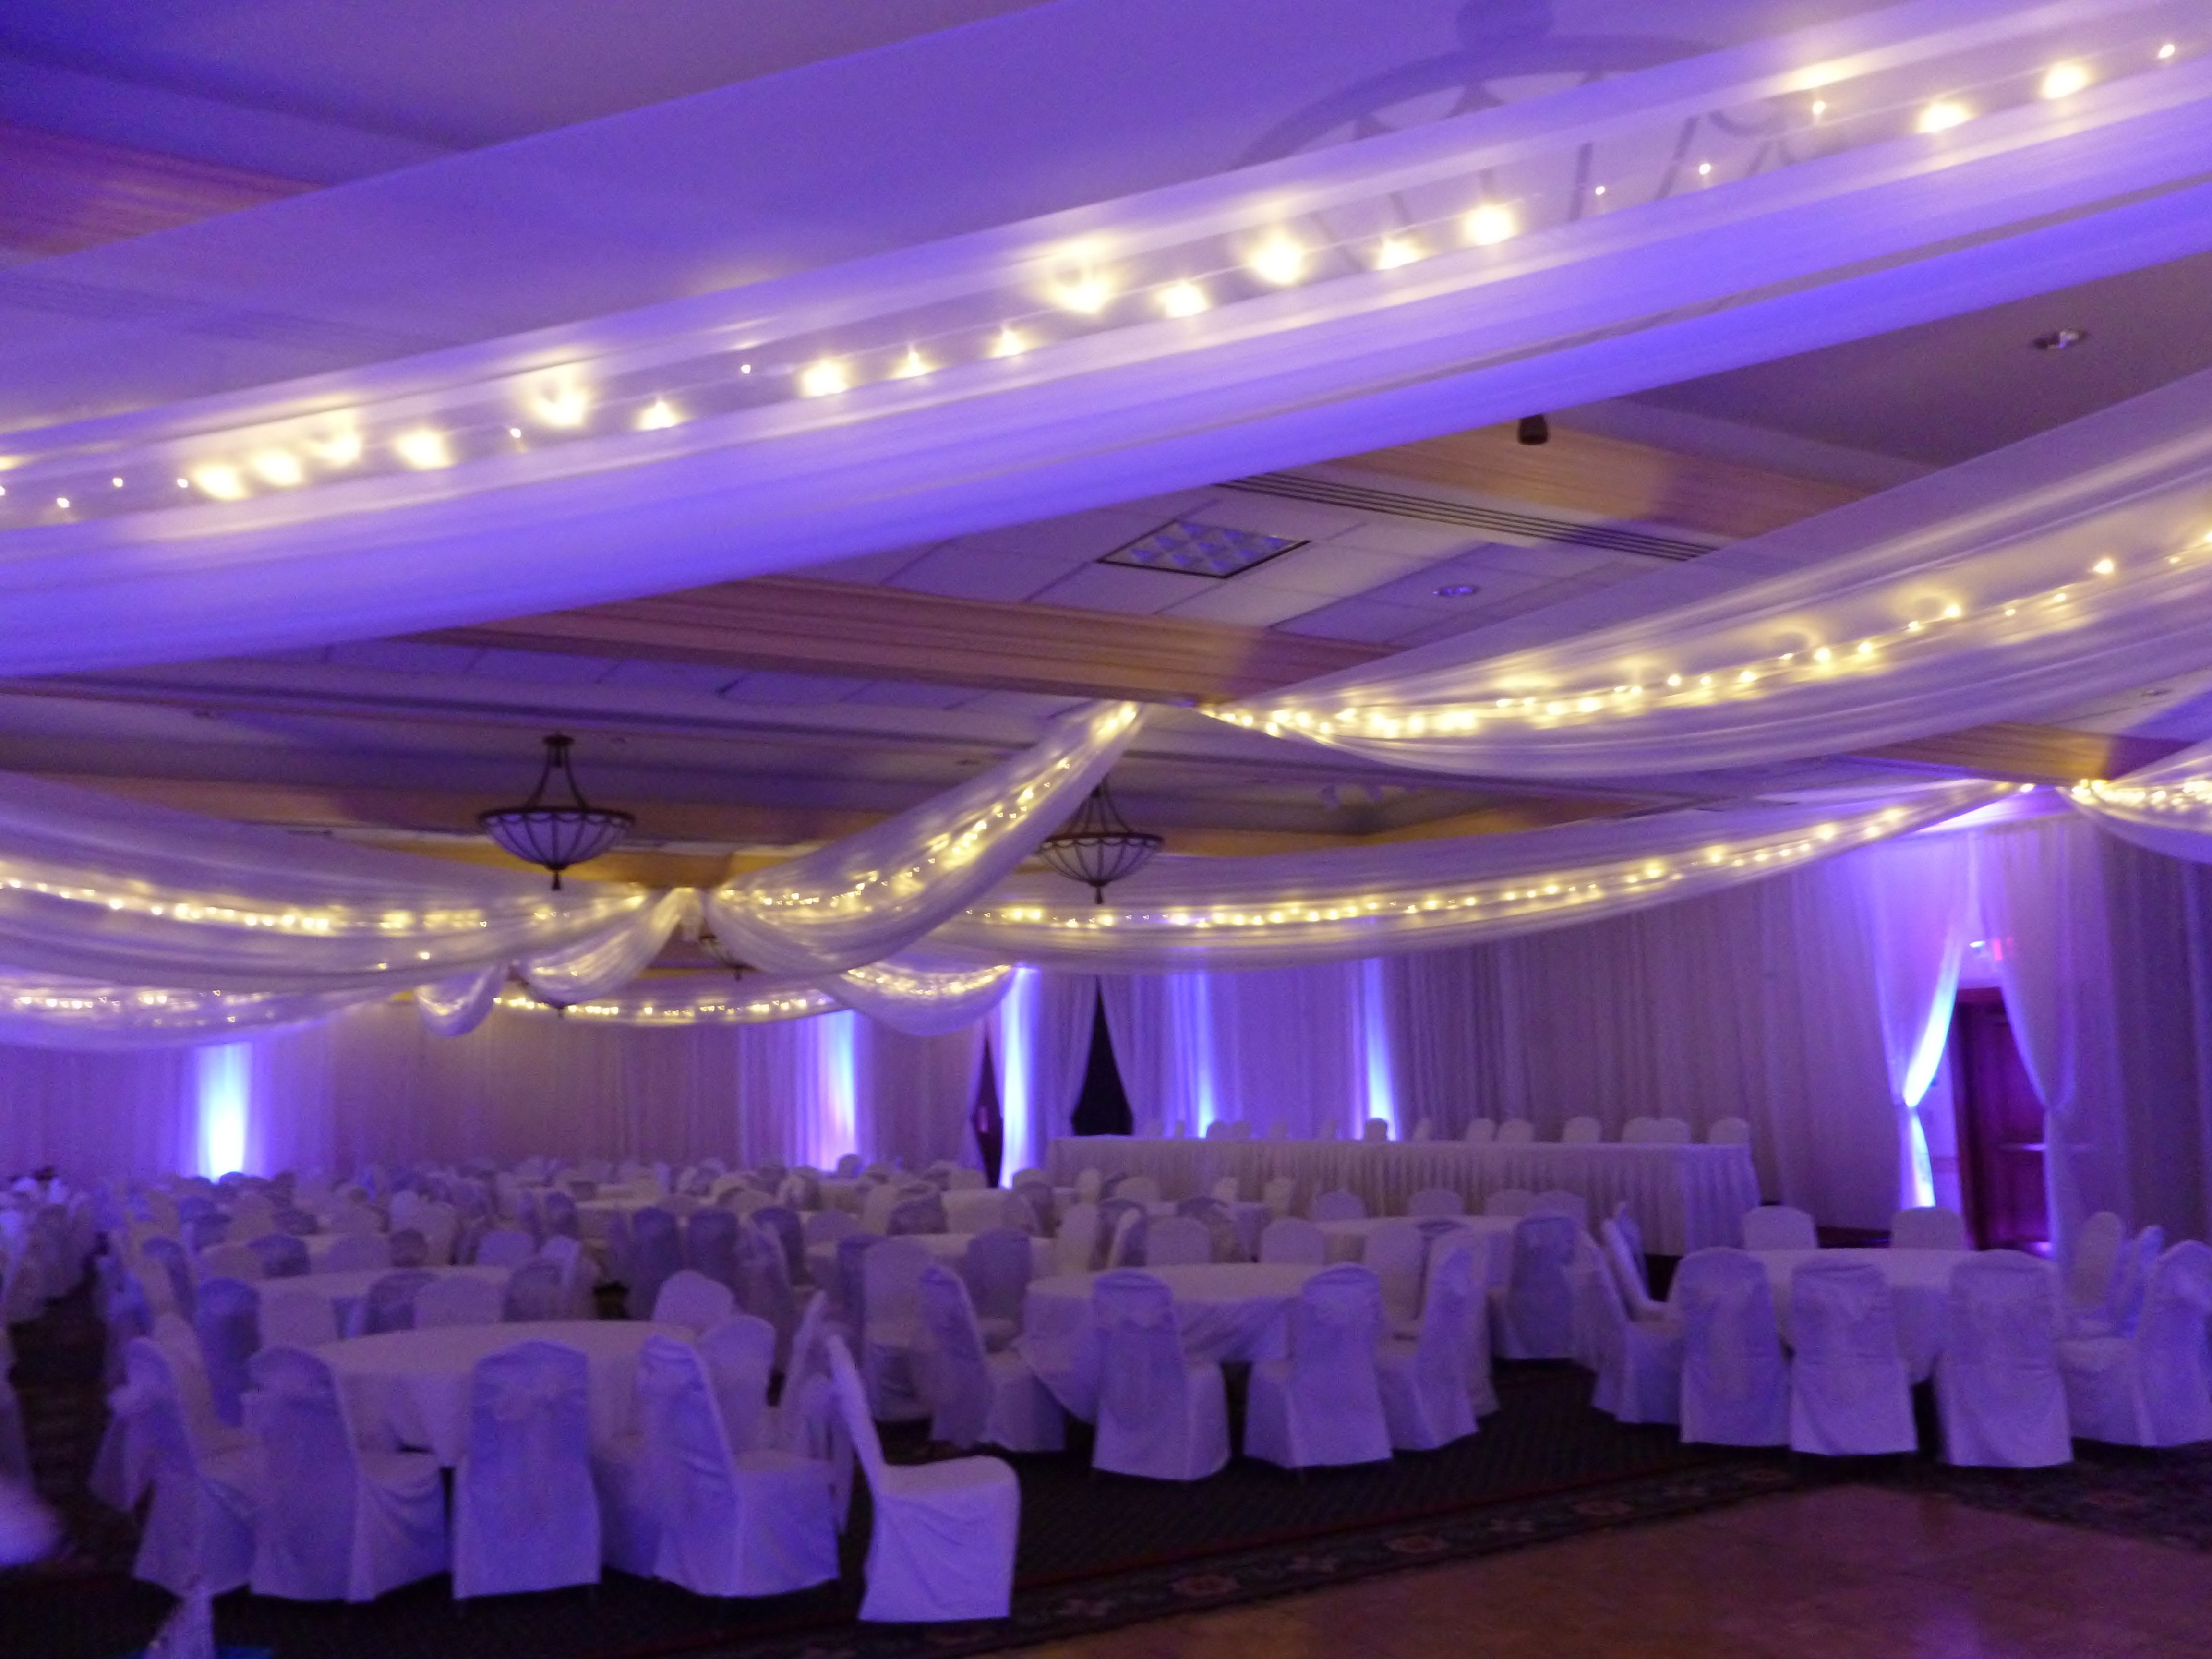 draping at pin white light charger drape plates curtains gold ceiling with drapes and pipe